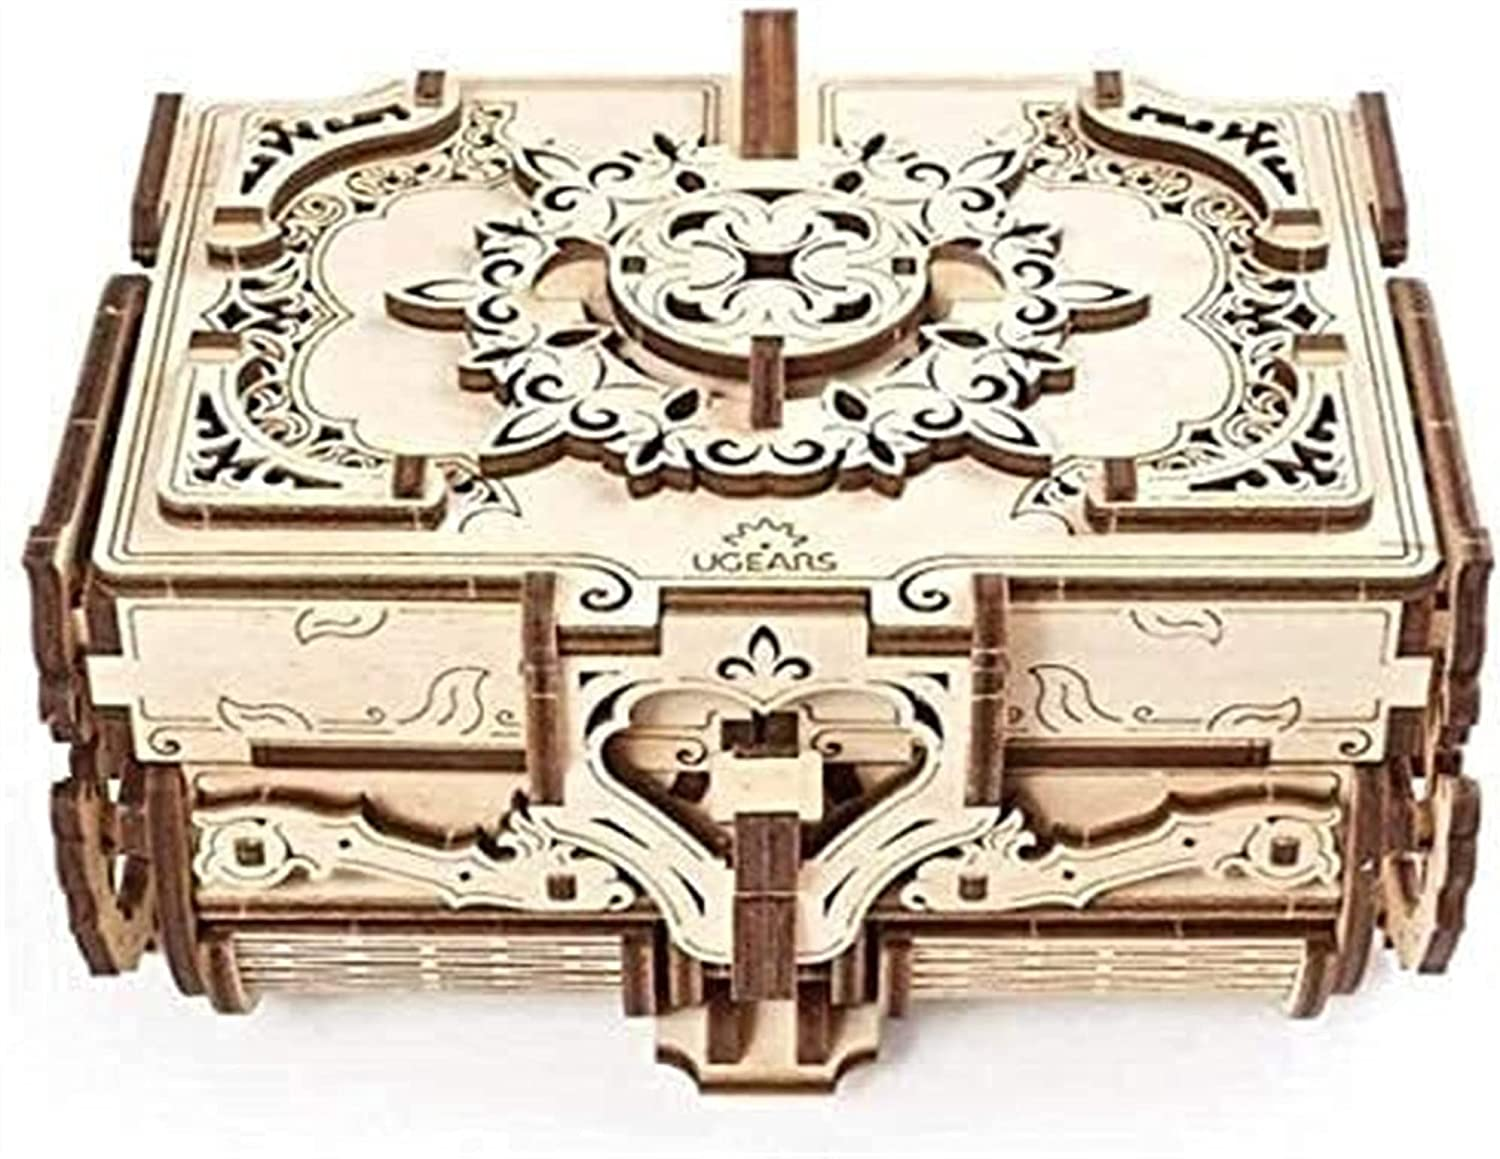 GDYJP 3D specialty shop Wooden Puzzle Max 68% OFF Antique Box M